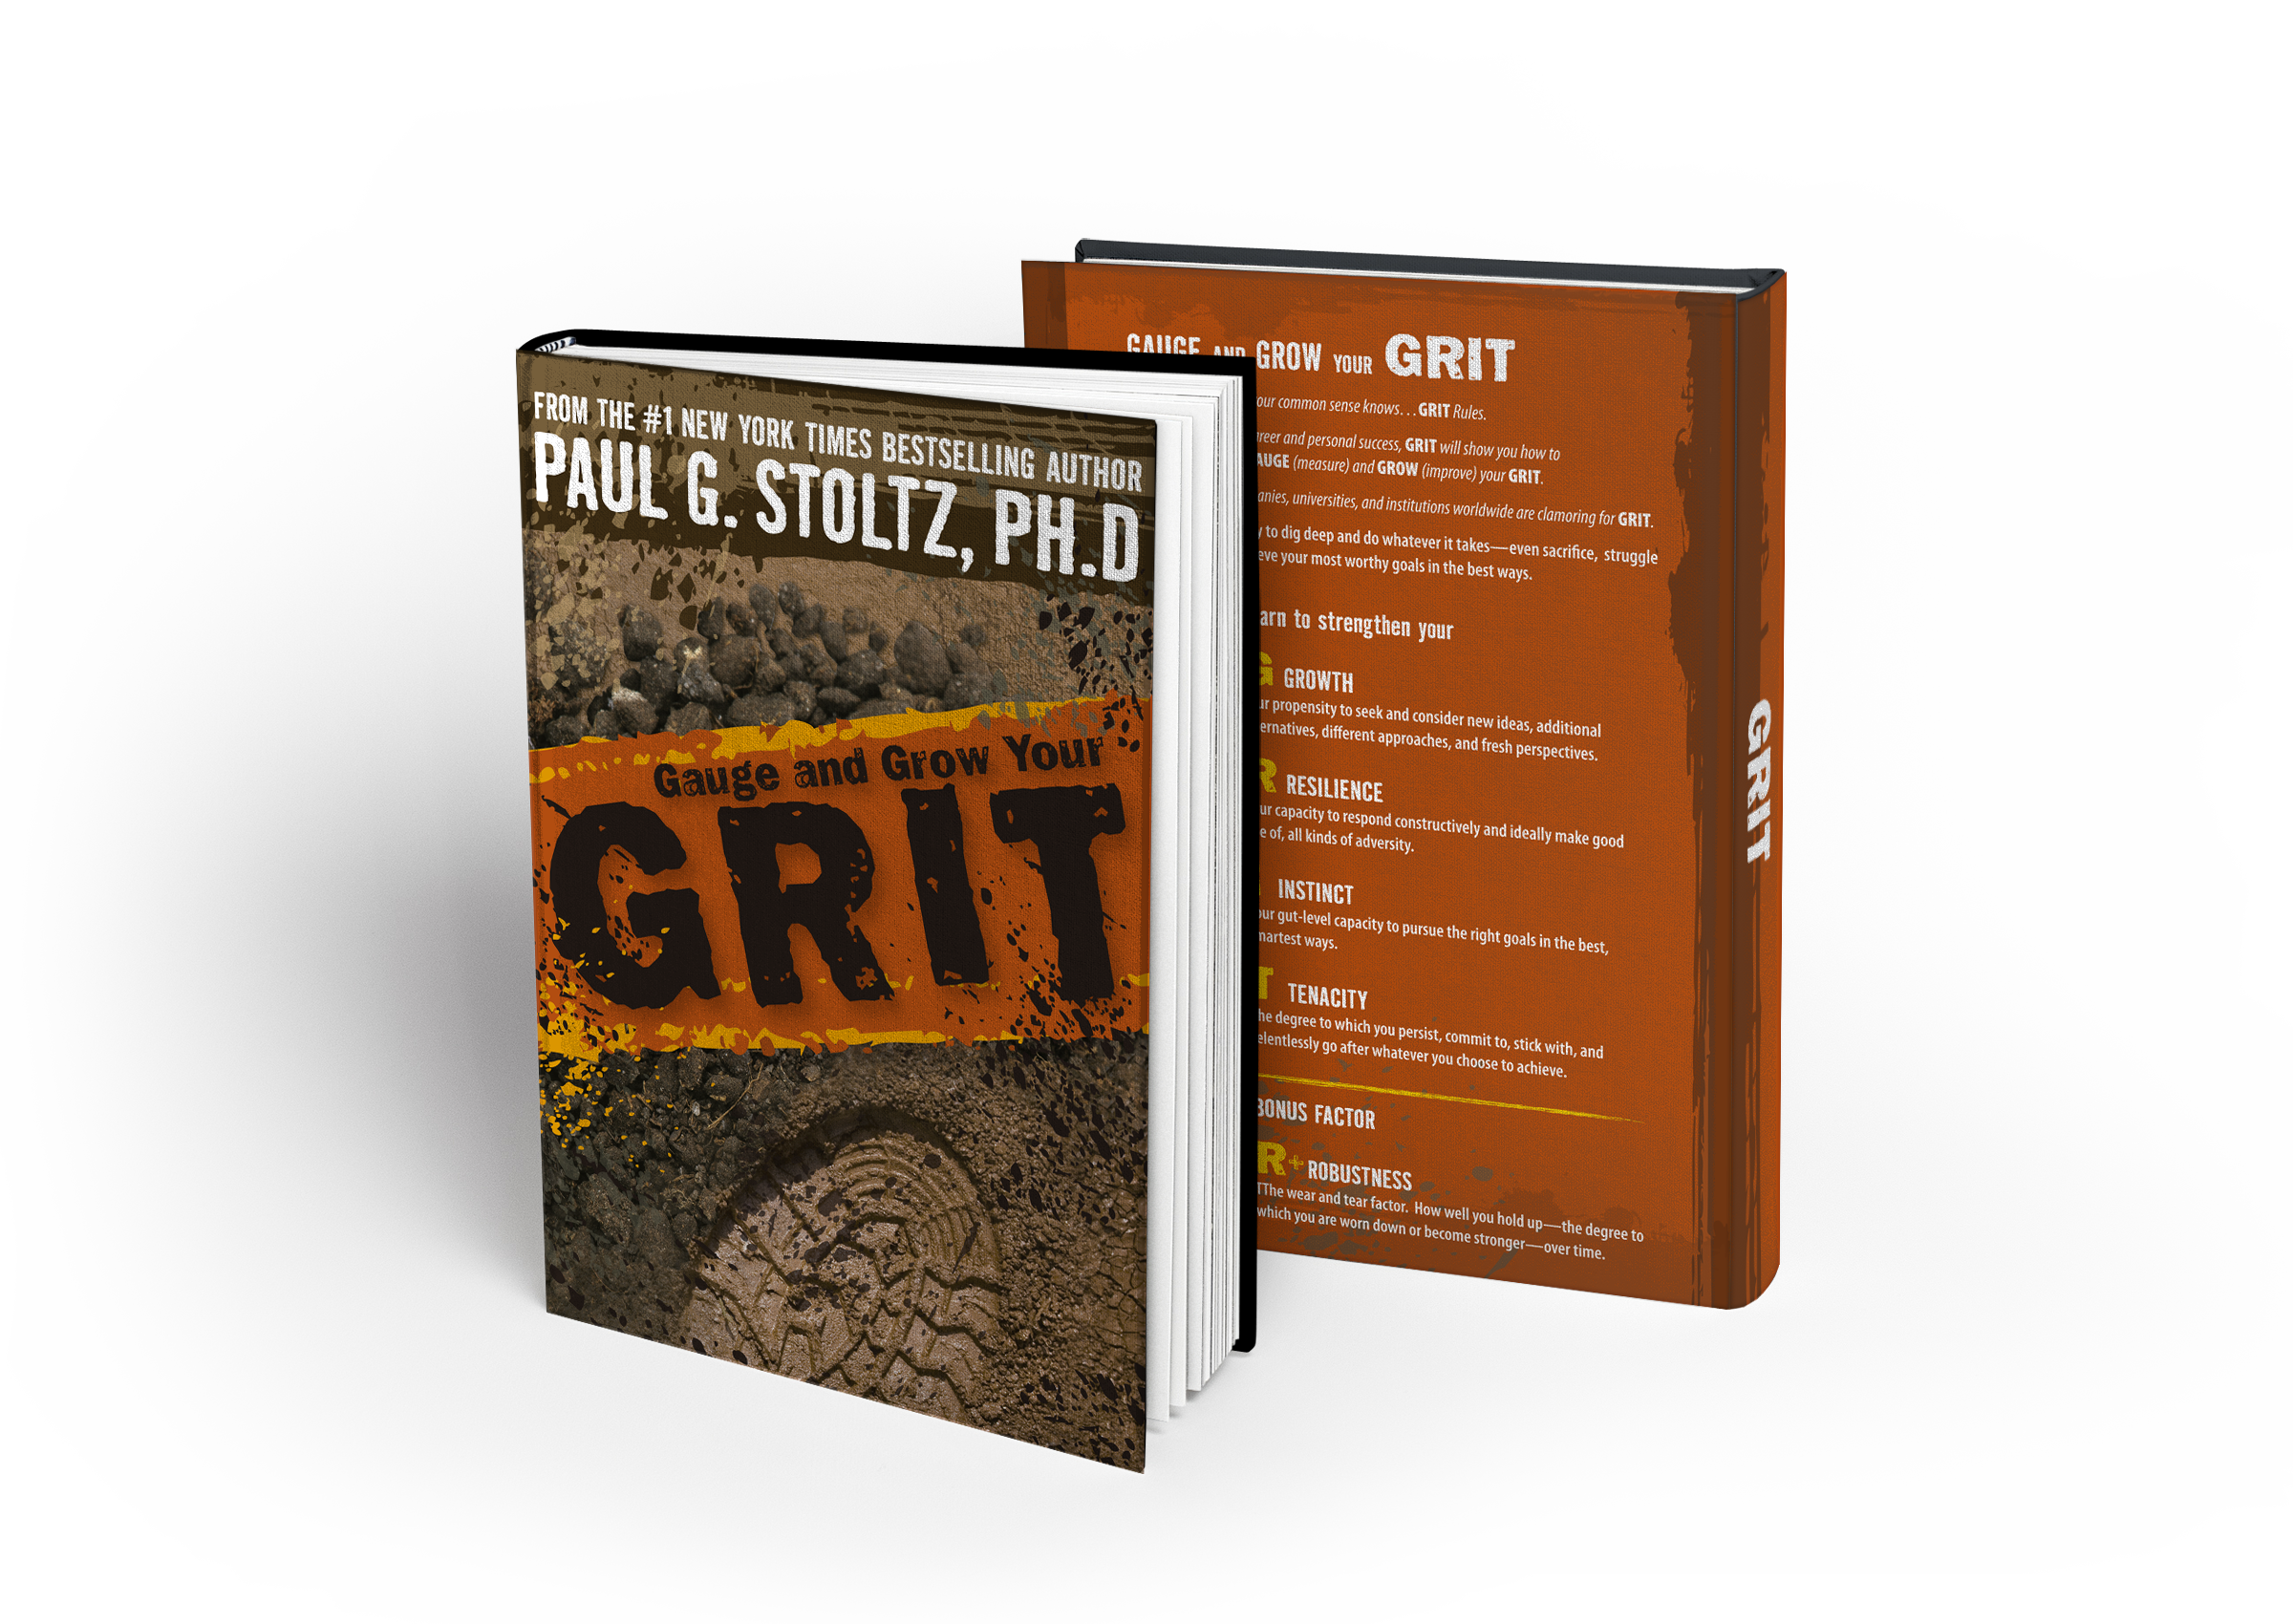 Gauge and Grow Your GRIT - Pre Order Today!